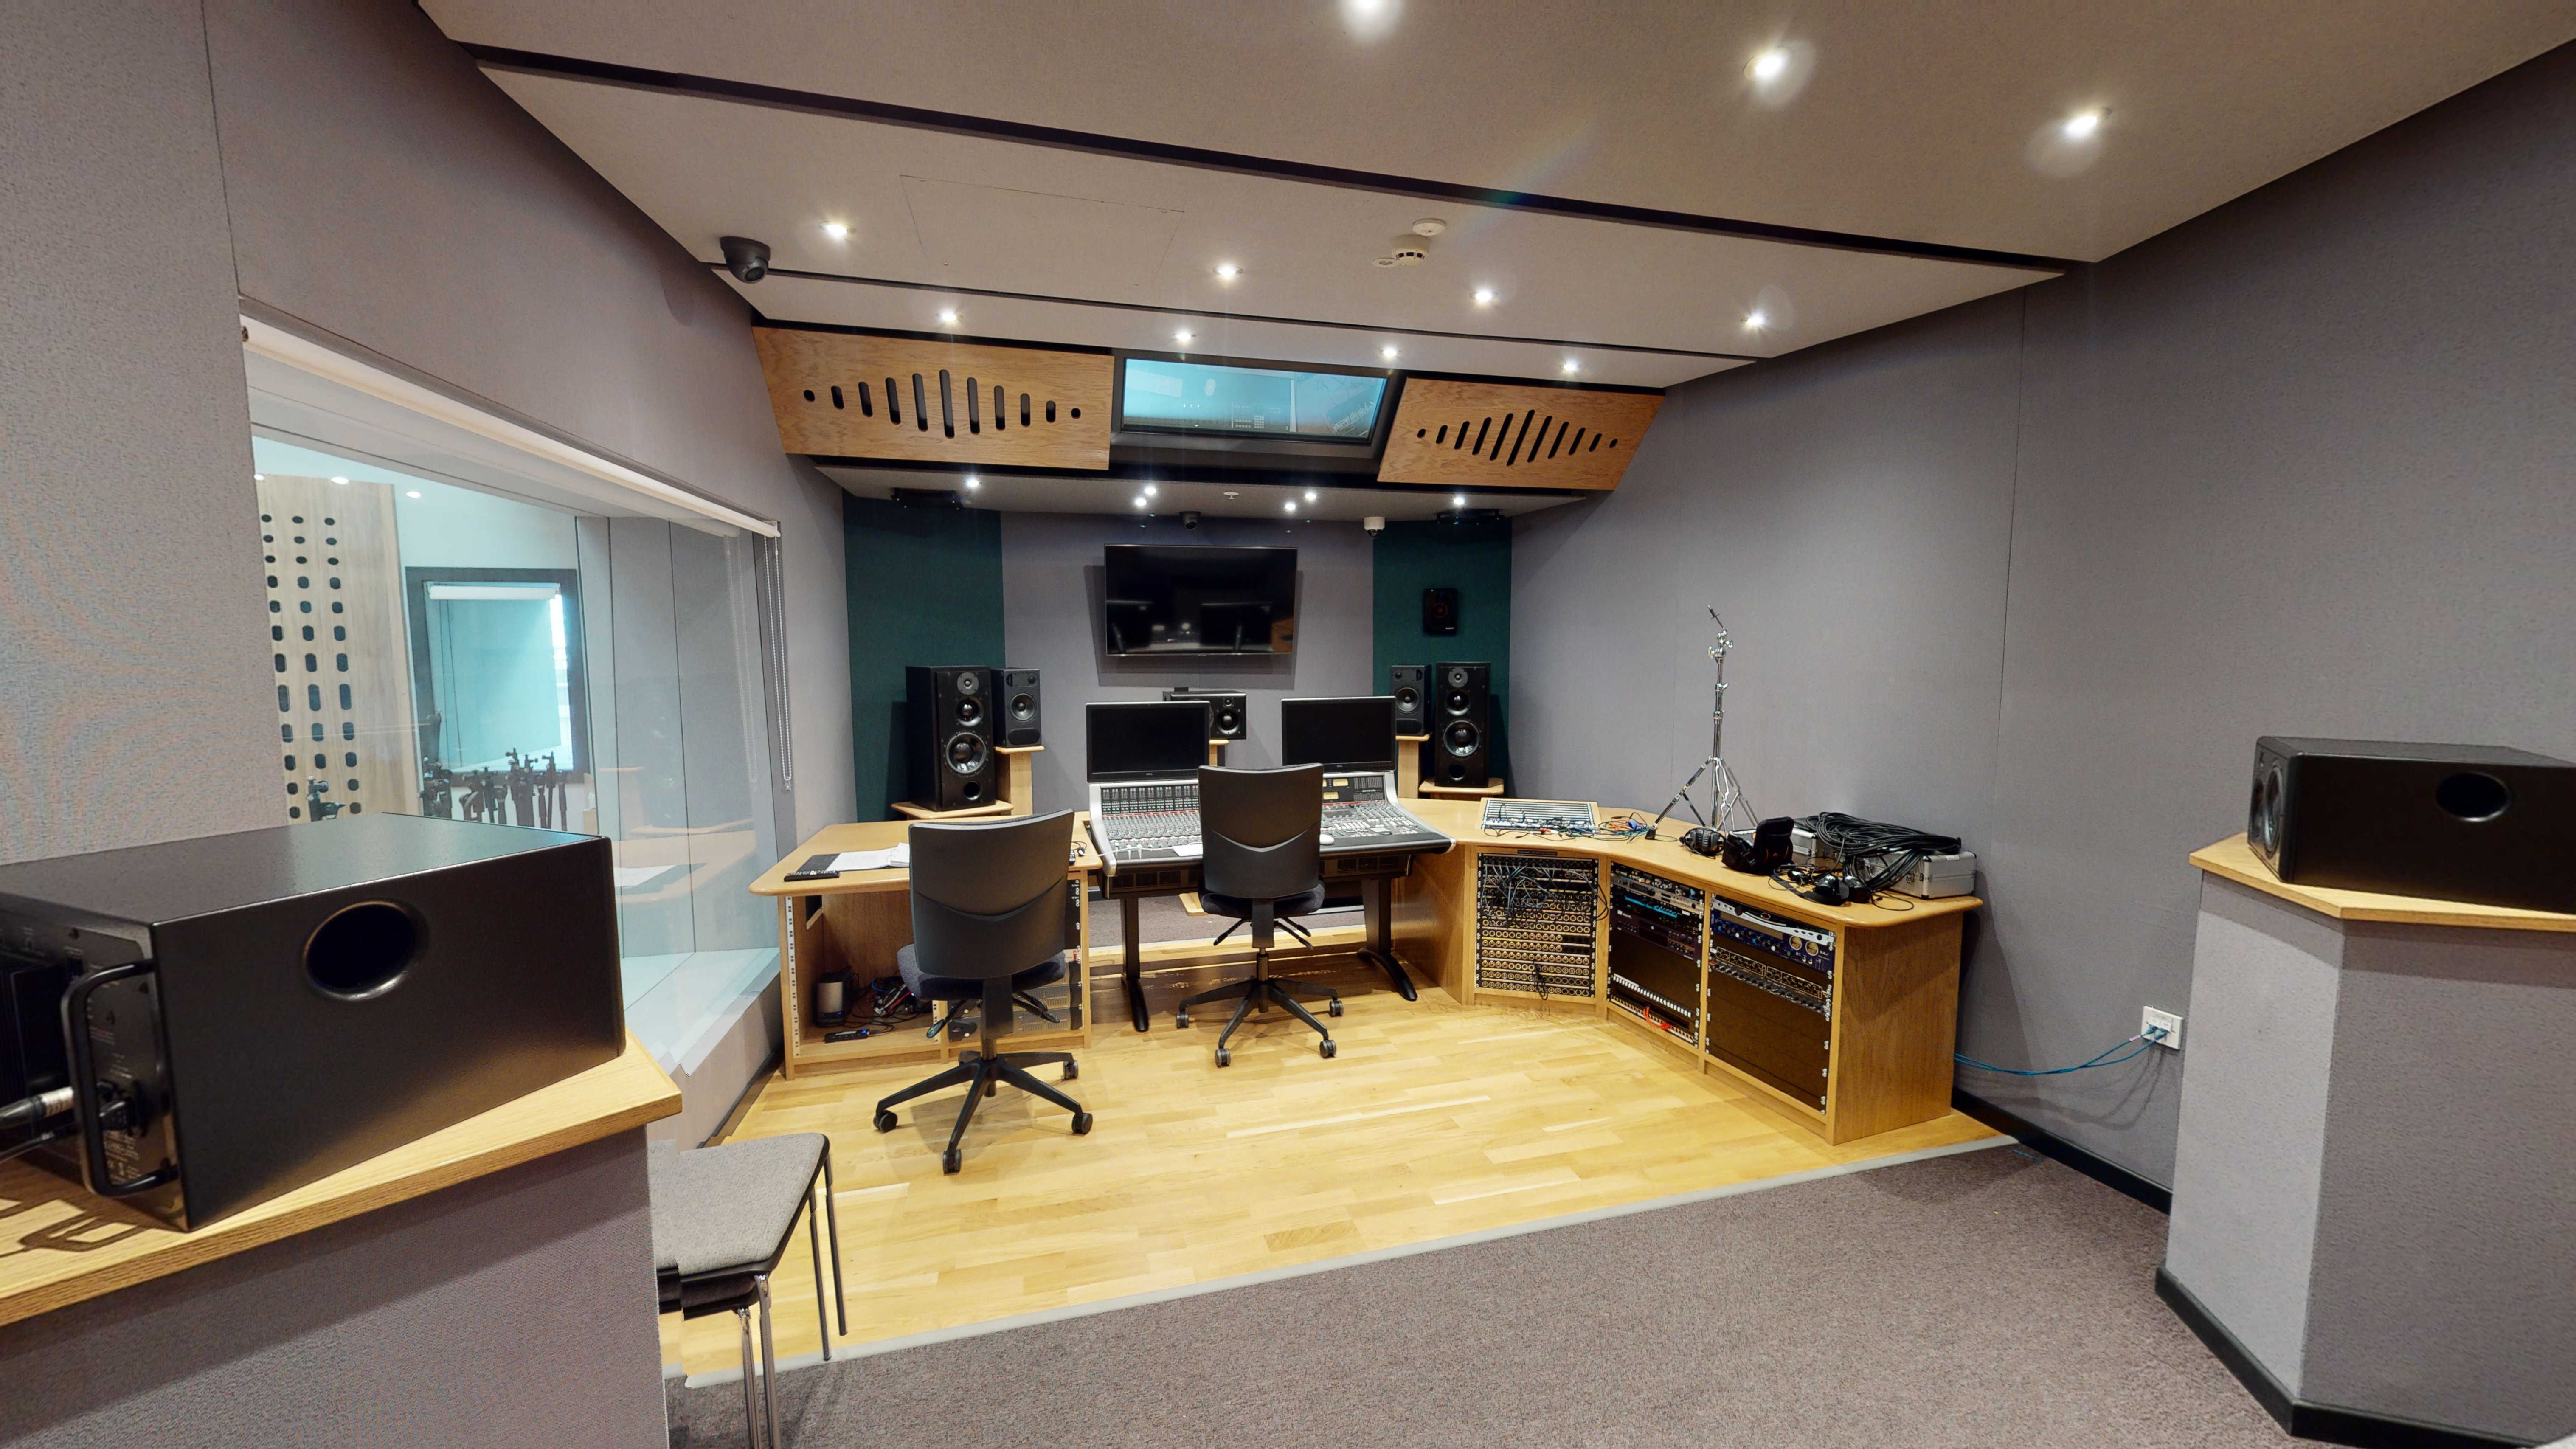 Control room with large window looking into live room/ studio, with large control console, monitors and chairs.